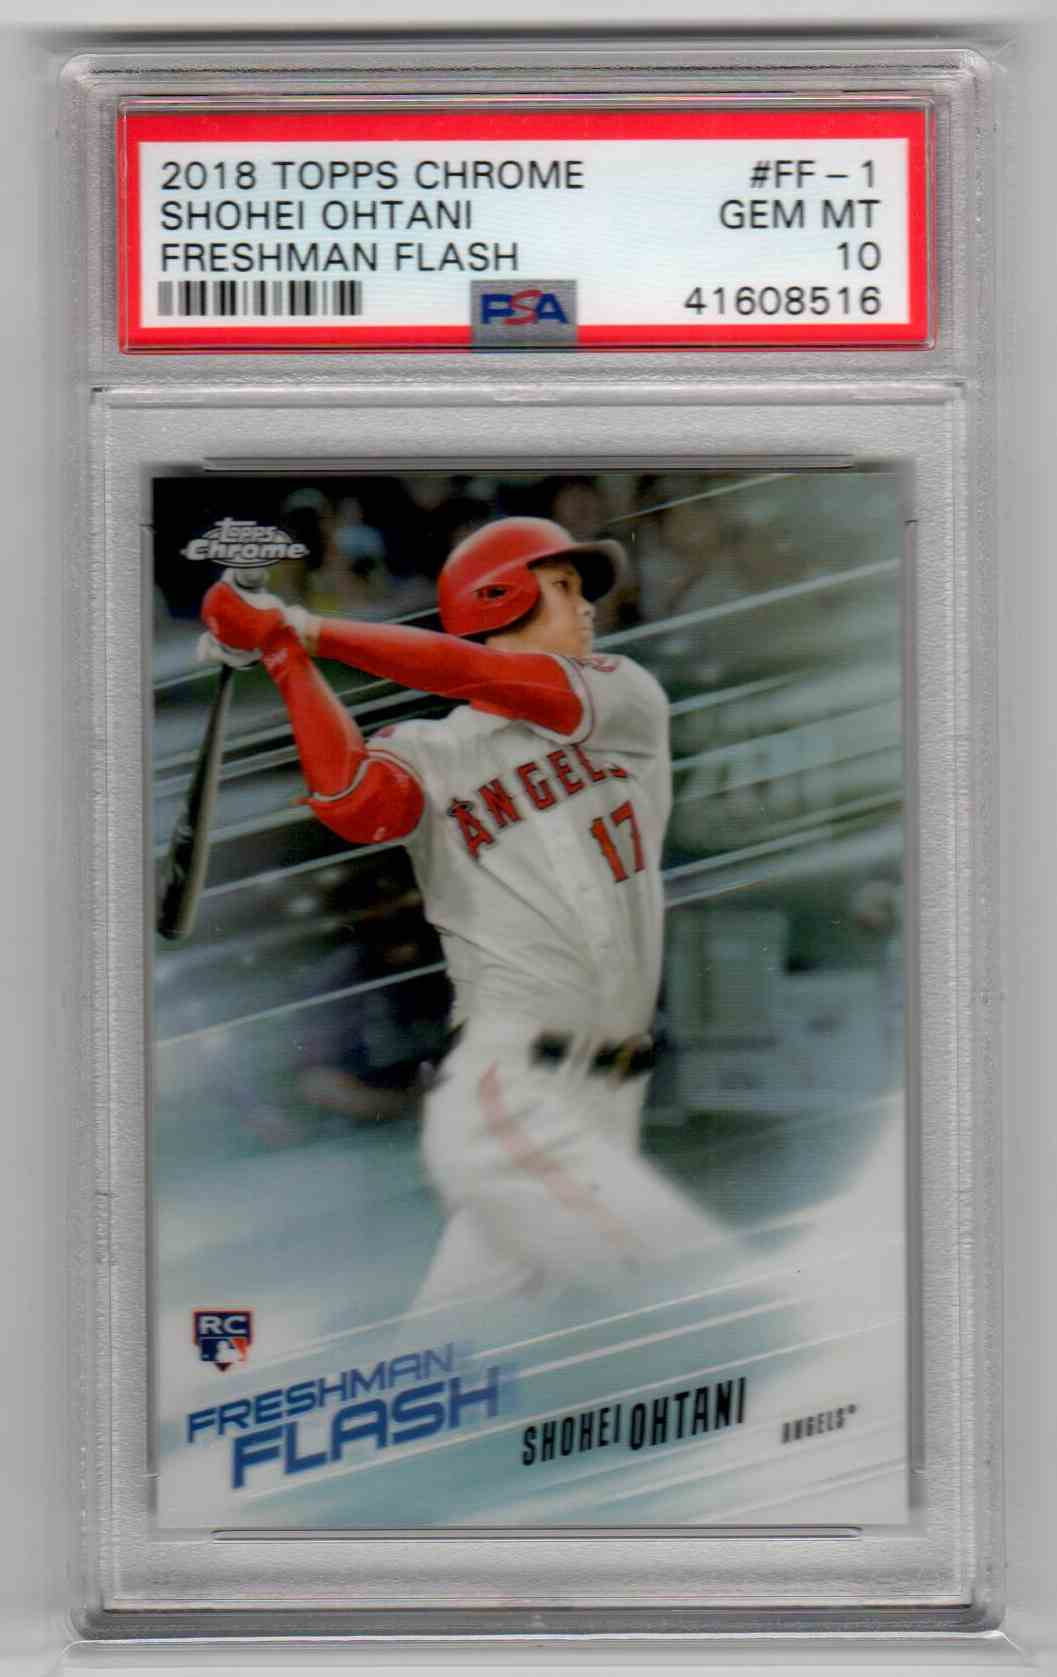 2018 Topps Chrome Freshman Flash Shohei Ohtani #FF-1 card front image